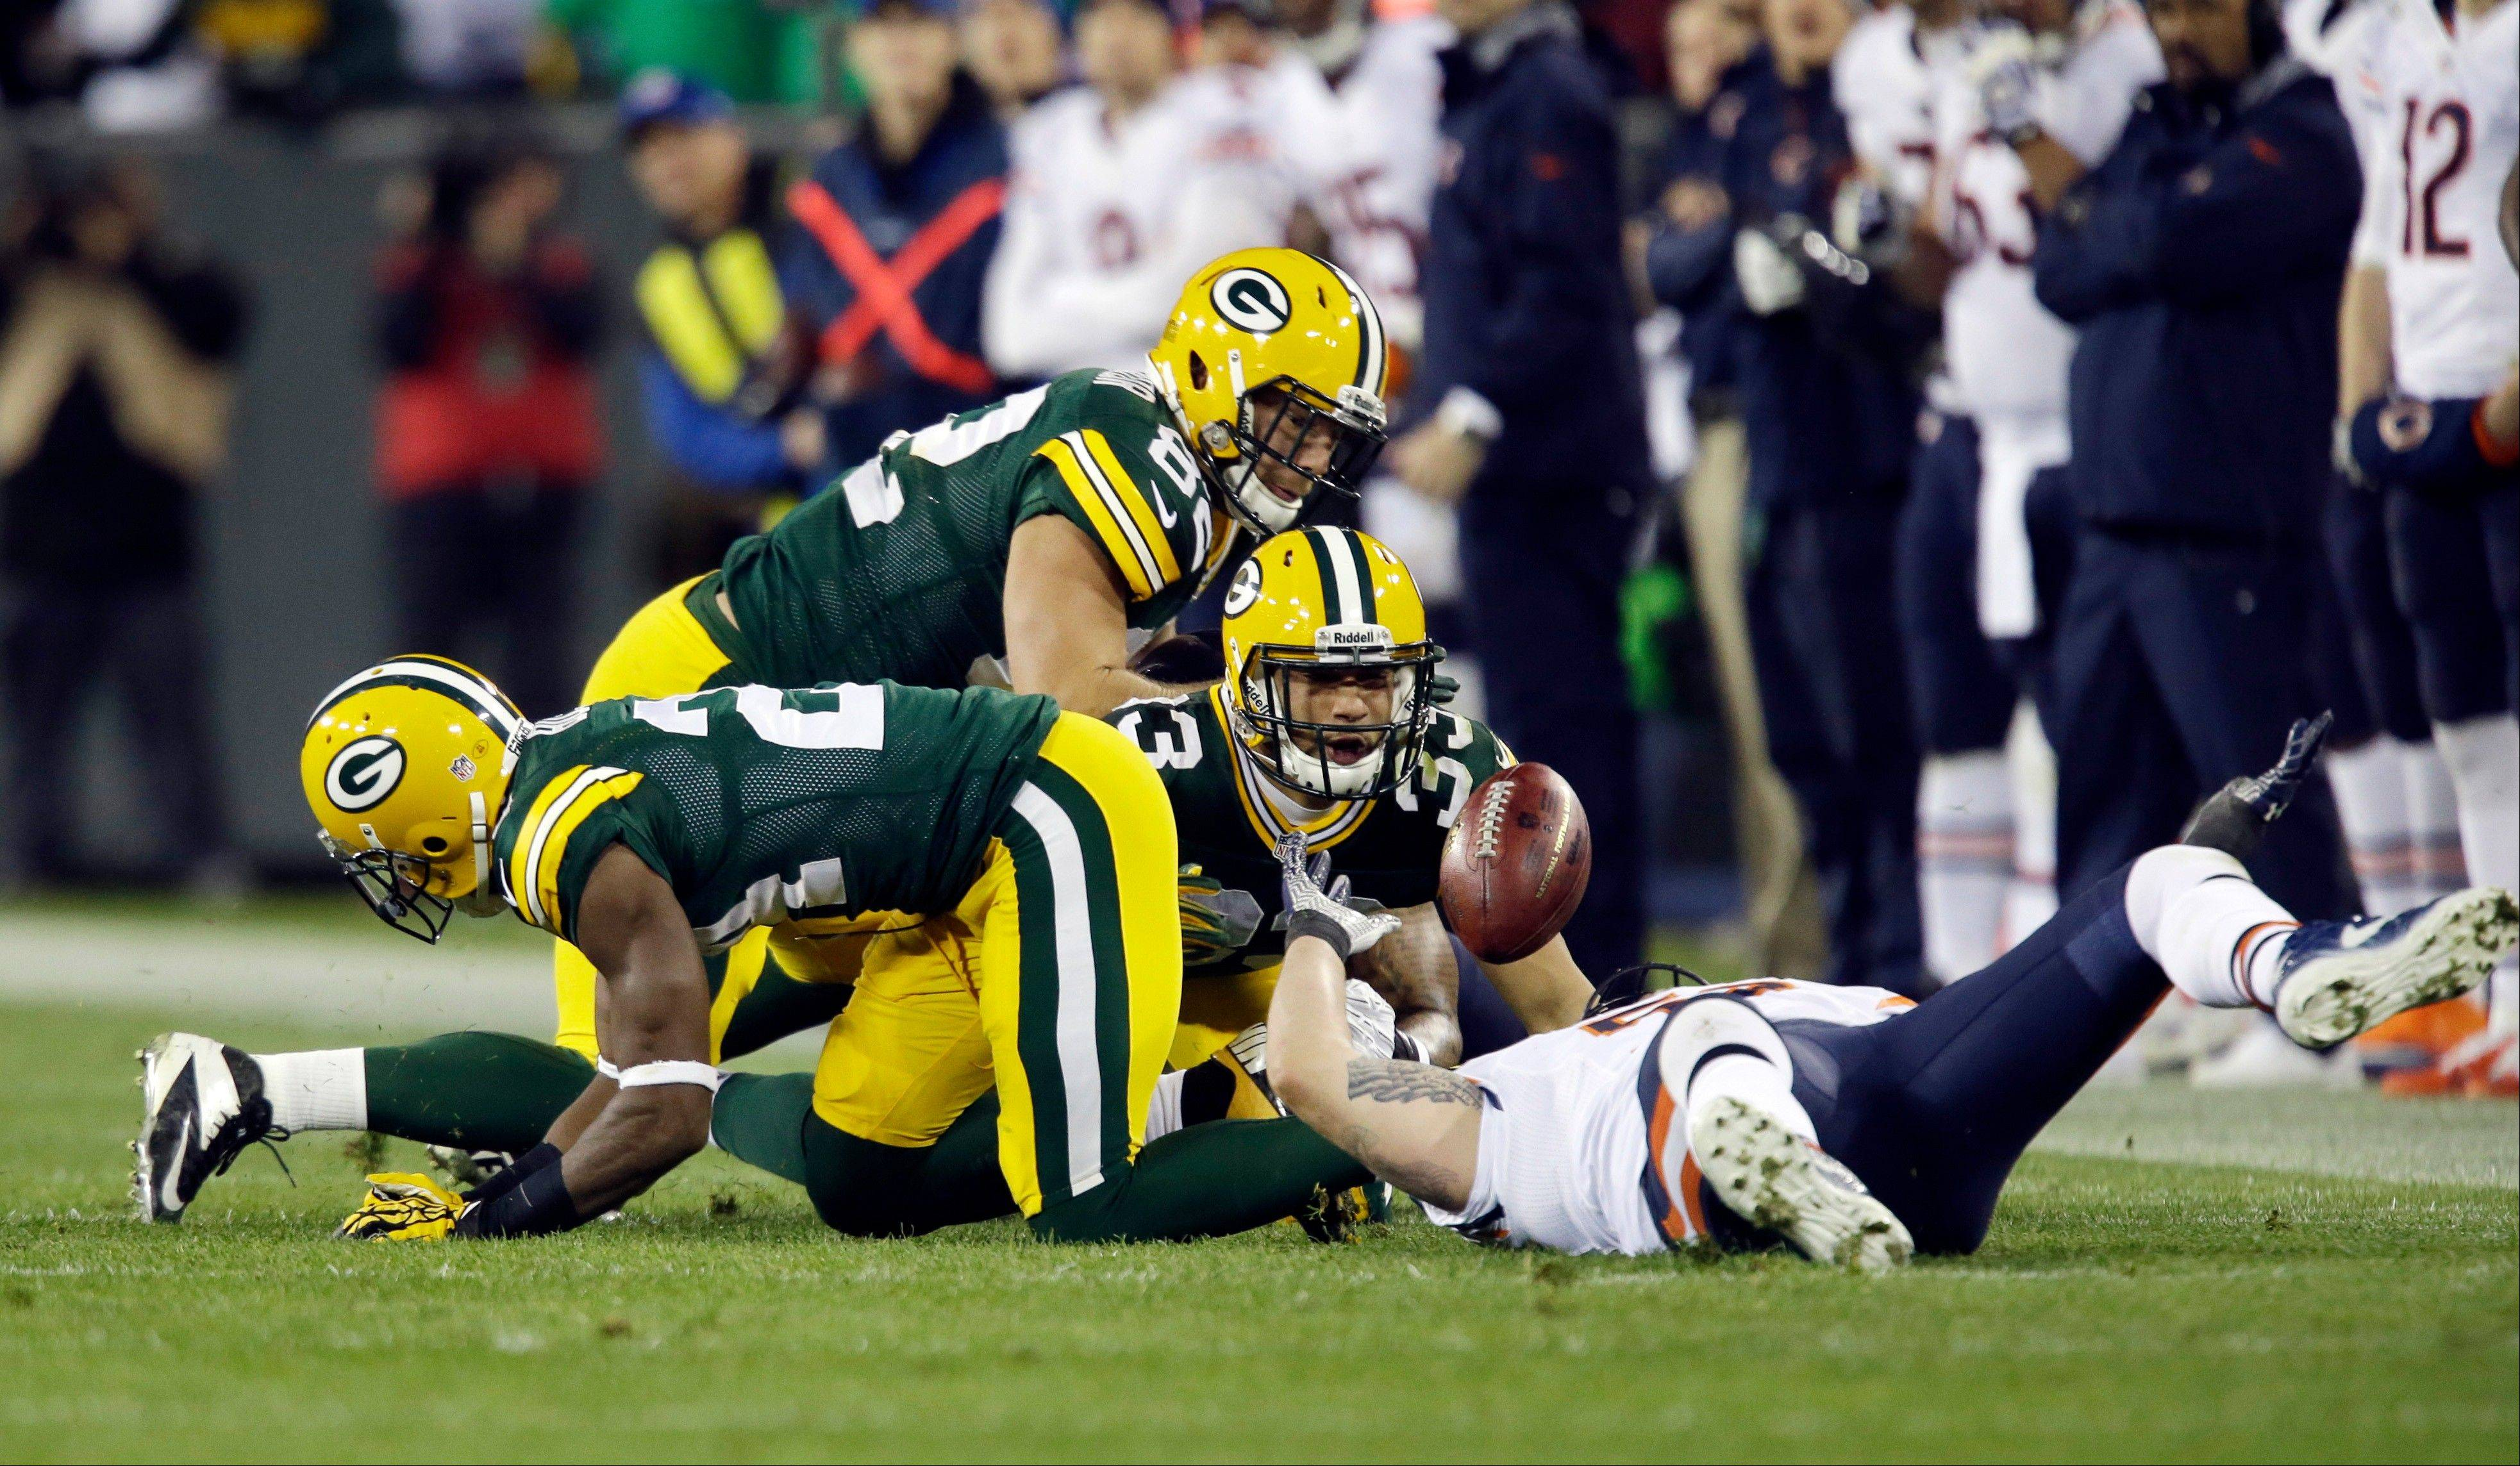 Players scramble for a loose ball on an on side kick during the second half of an NFL football game between the Green Bay Packers and the Chicago Bears Monday, Nov. 4, 2013, in Green Bay, Wis. The Packers recovered the ball.